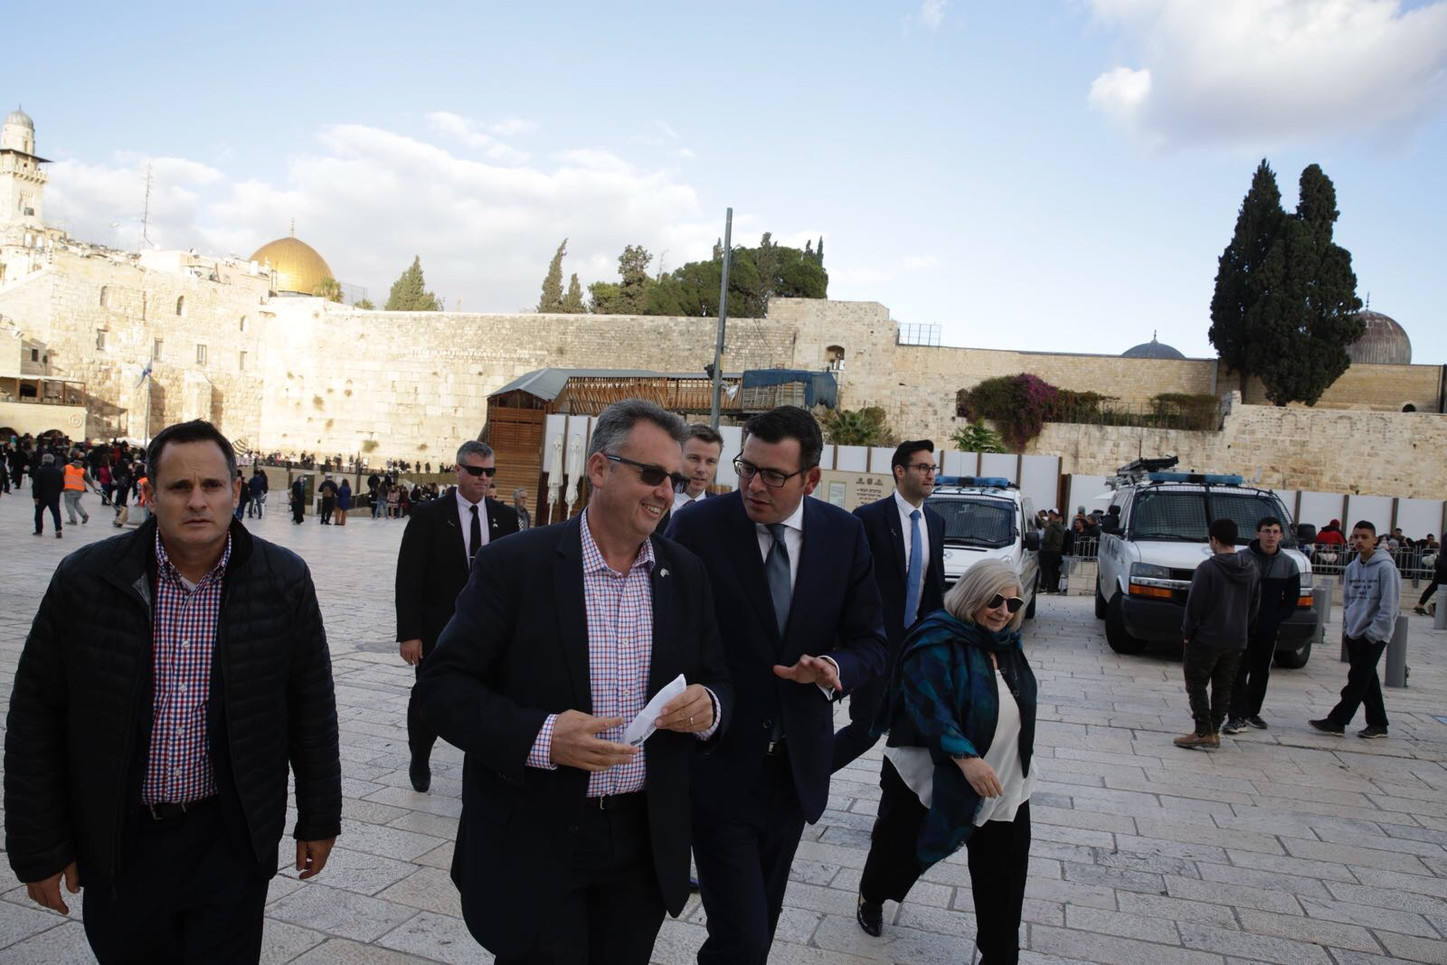 Victorian Premier Daniel Andrews at the (Kotel) Western Wall